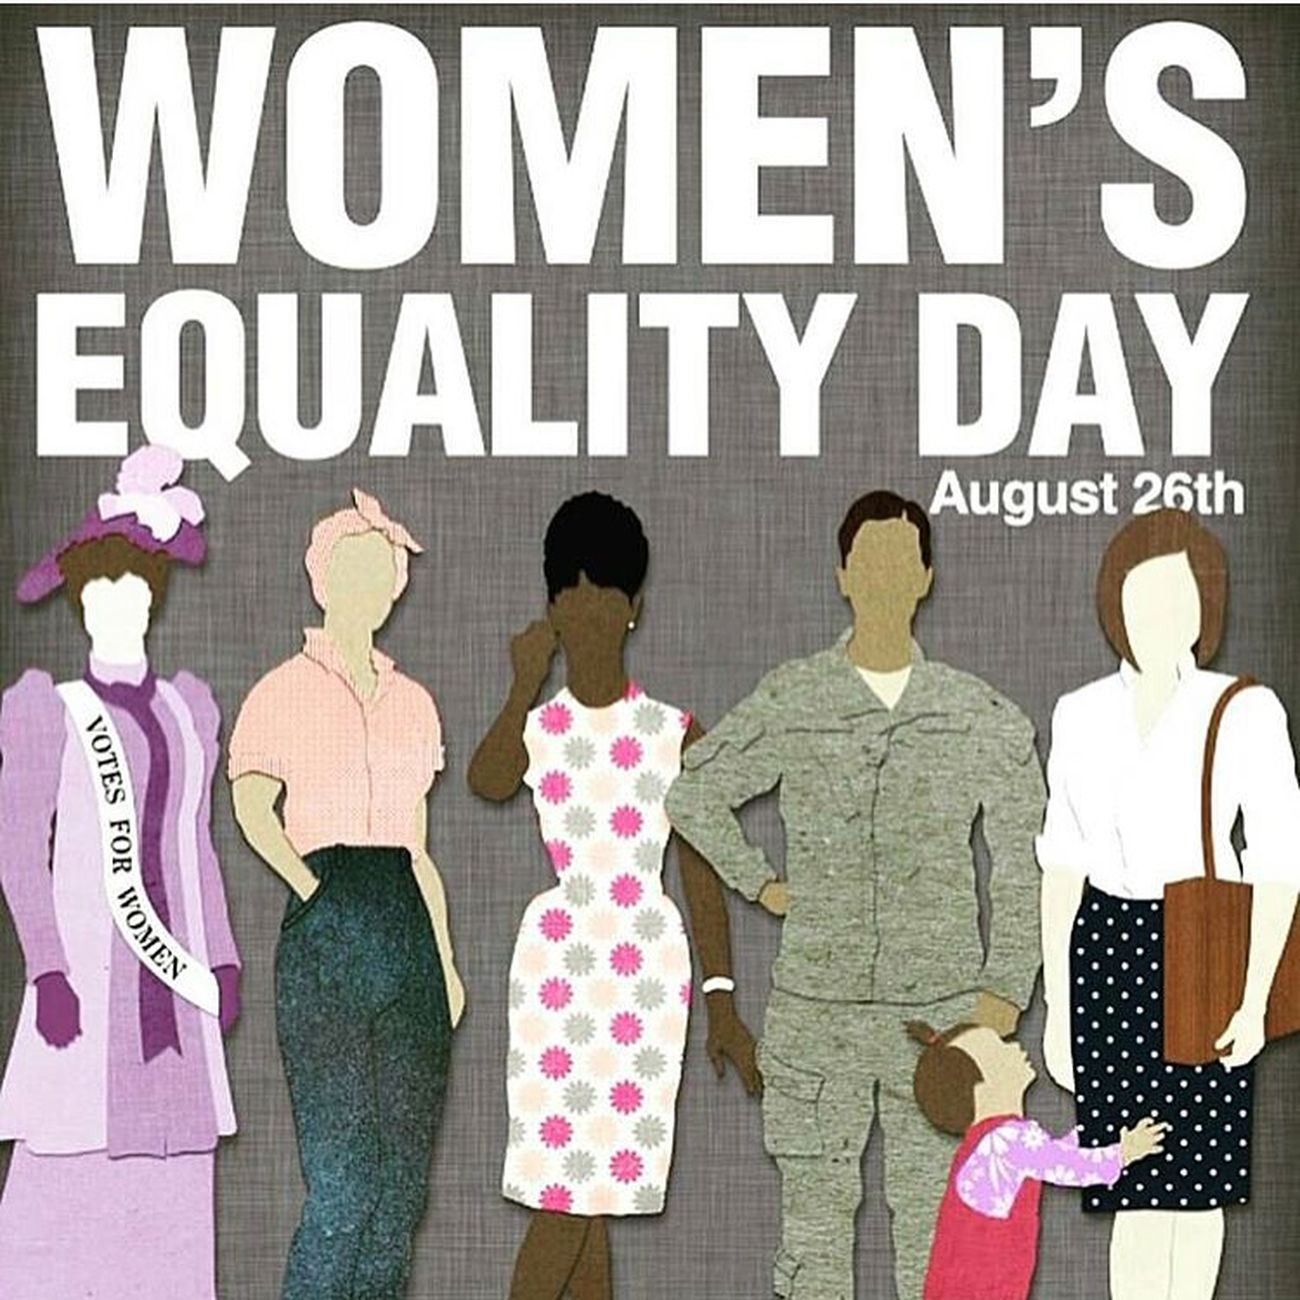 💐Happy women's equality day💐 posting this because dogs are great but women are POWERFUL! #WomensEqualityDay #feminism #feminineReverence #respecttheladies #aug262015